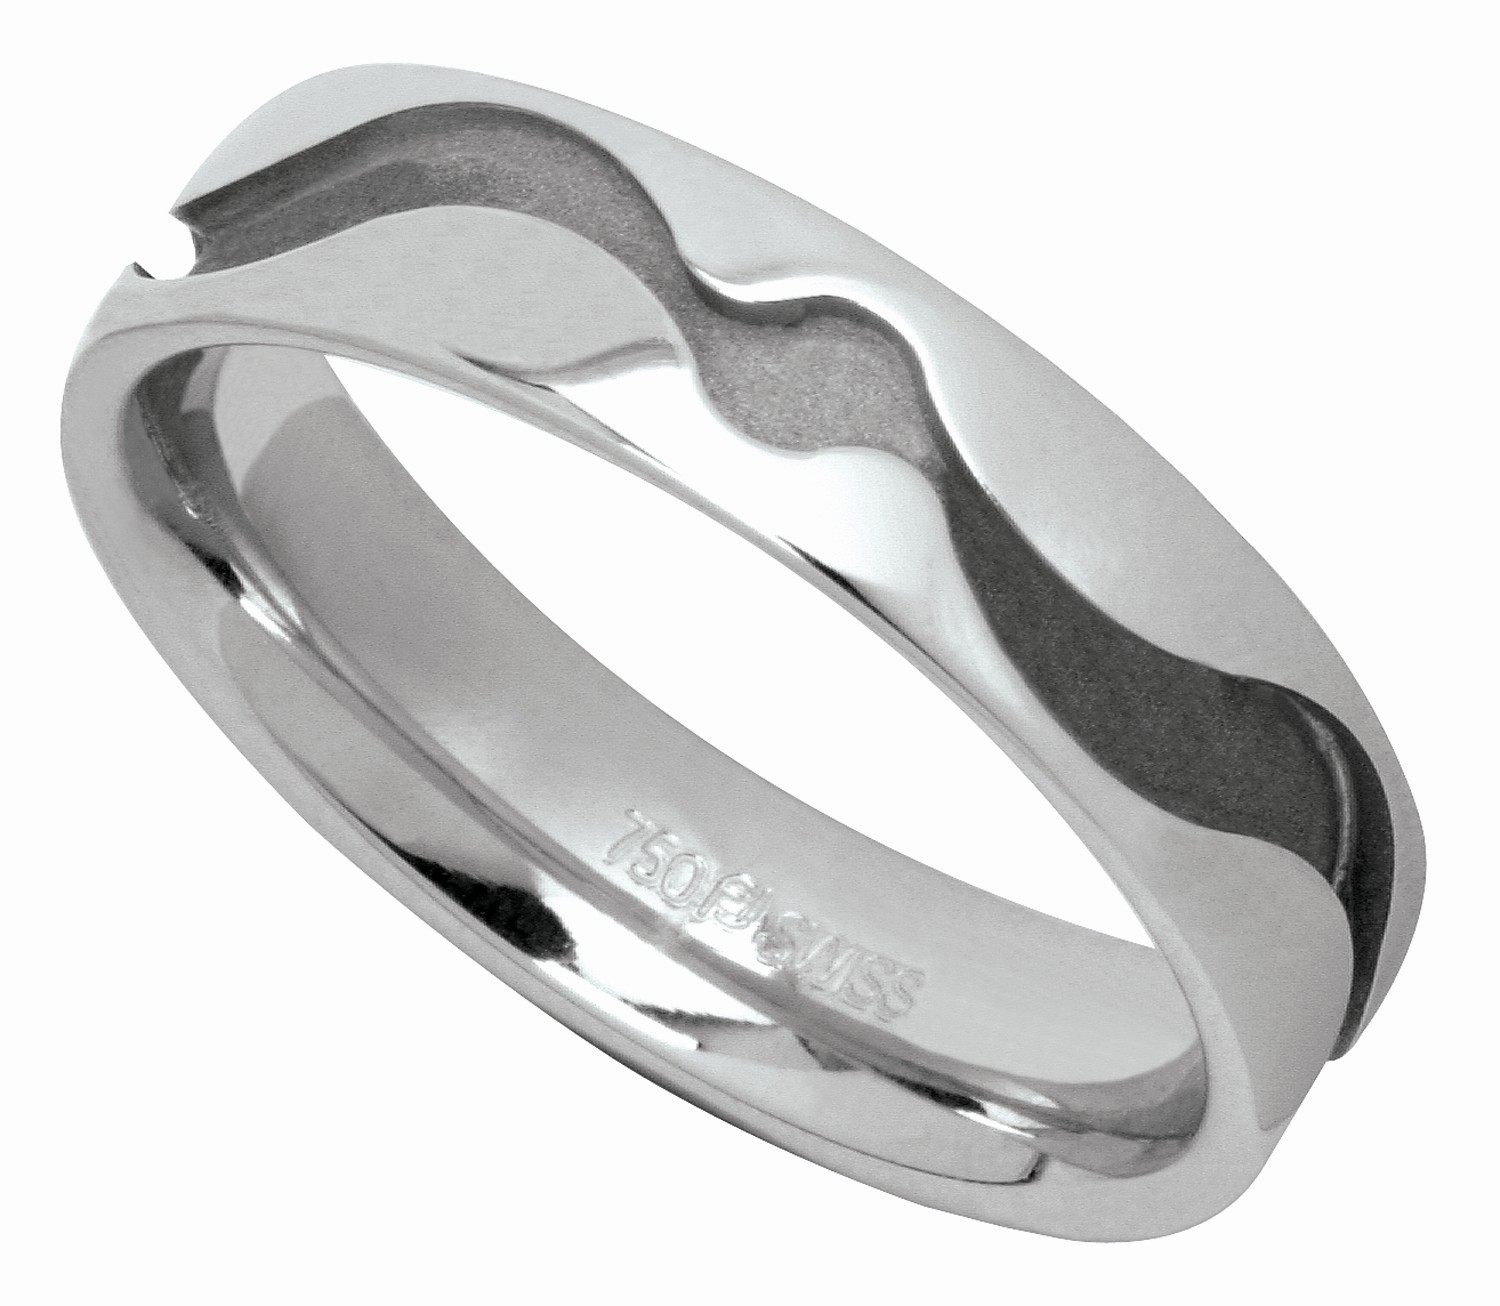 Furrer-Jacot Platinum Groom's Wedding Band